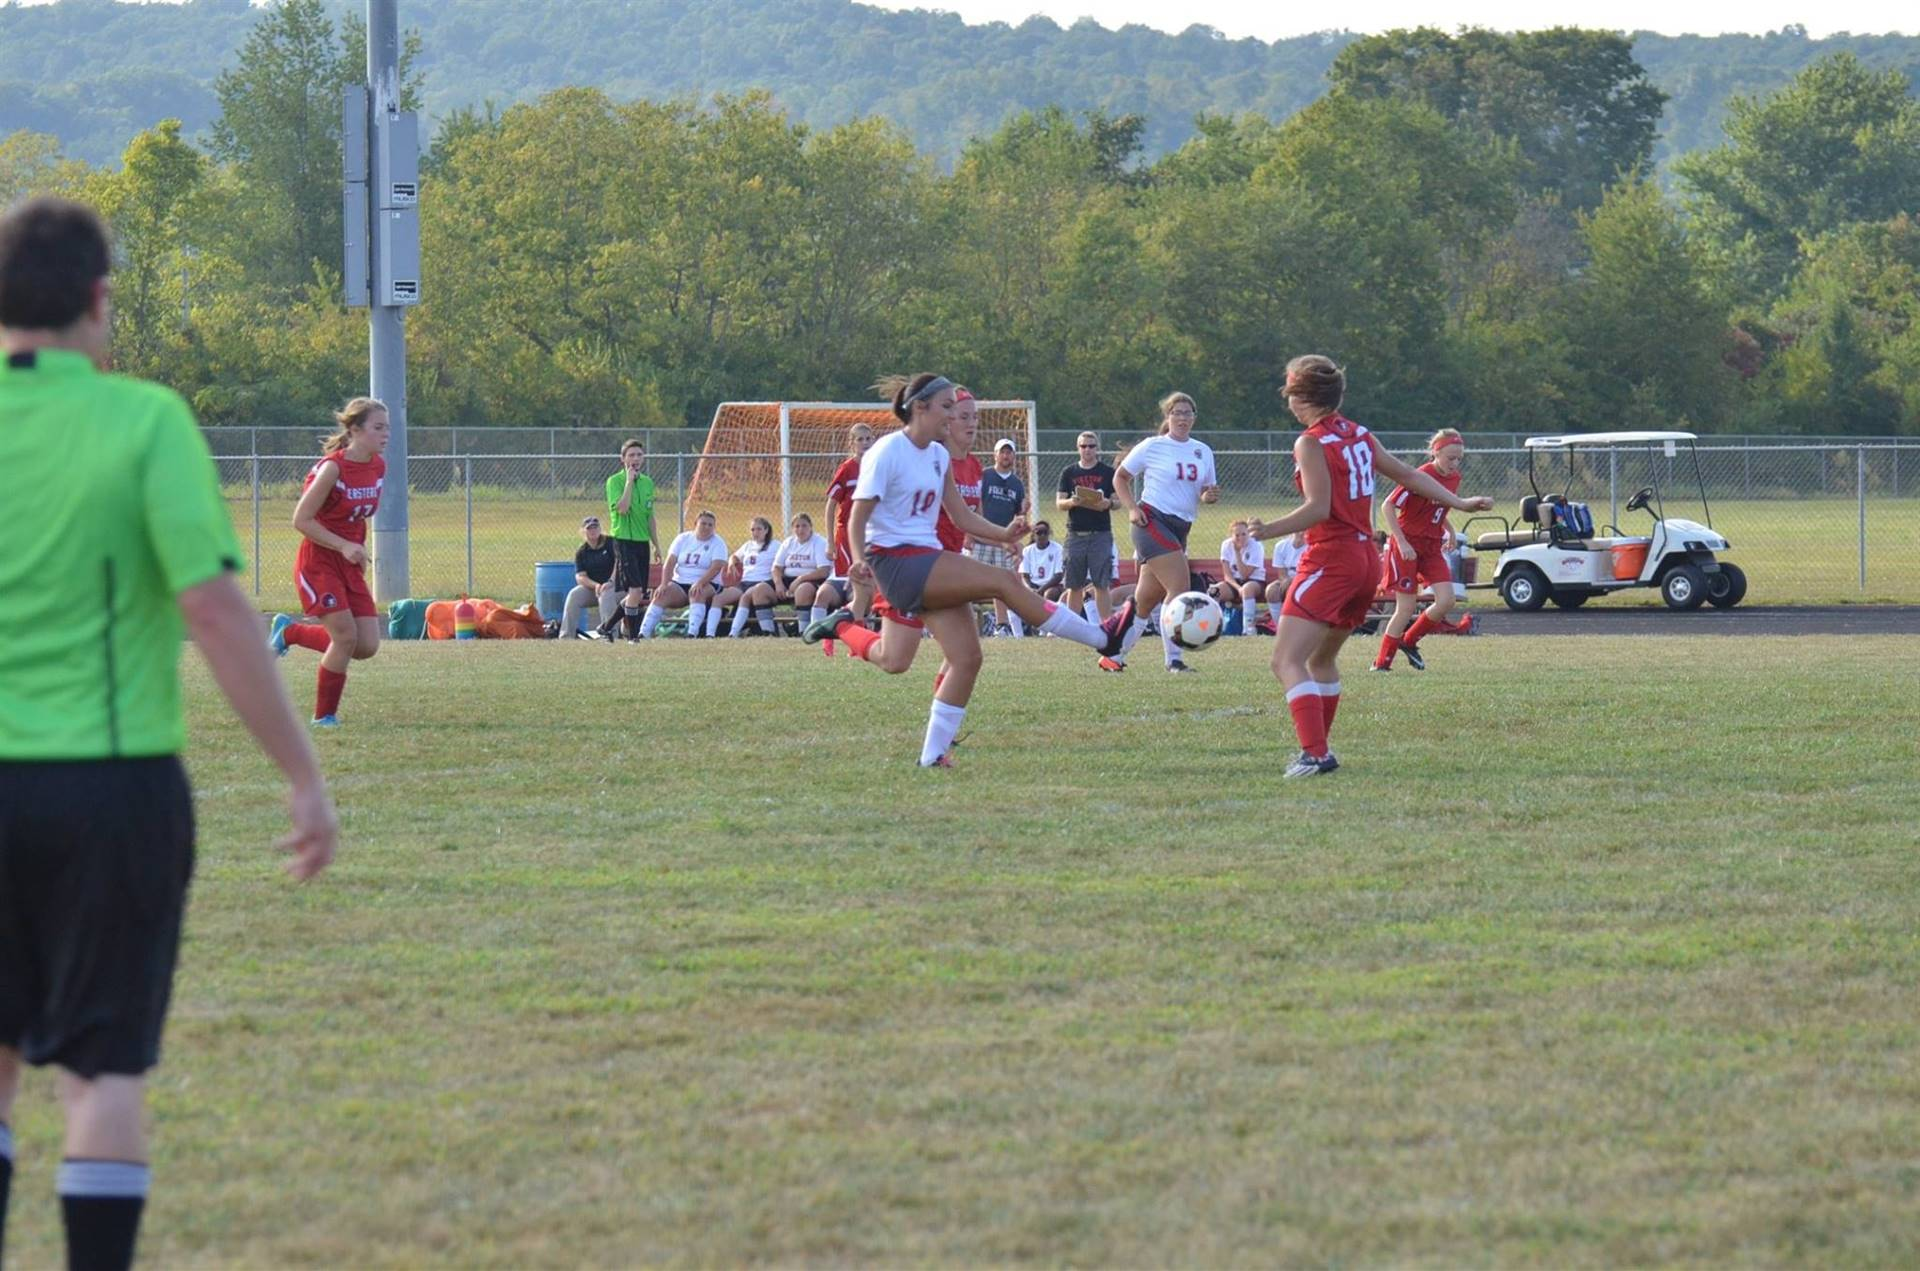 Ally Crothers kicking the ball up the field.